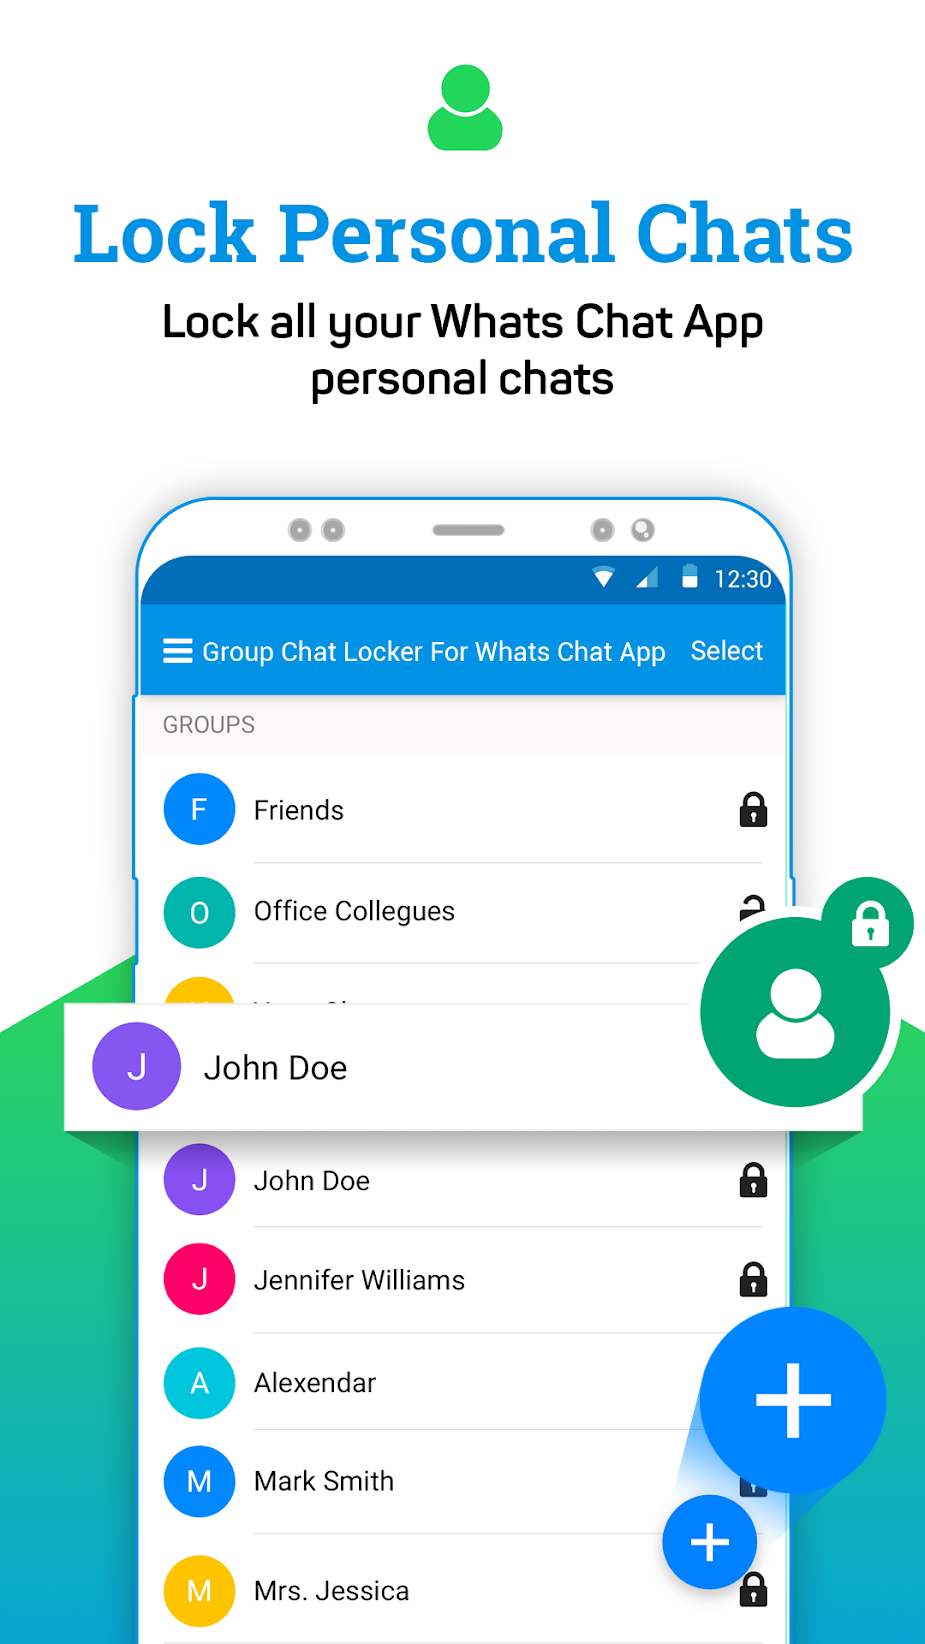 Group Chat Locker For Whats Chat App